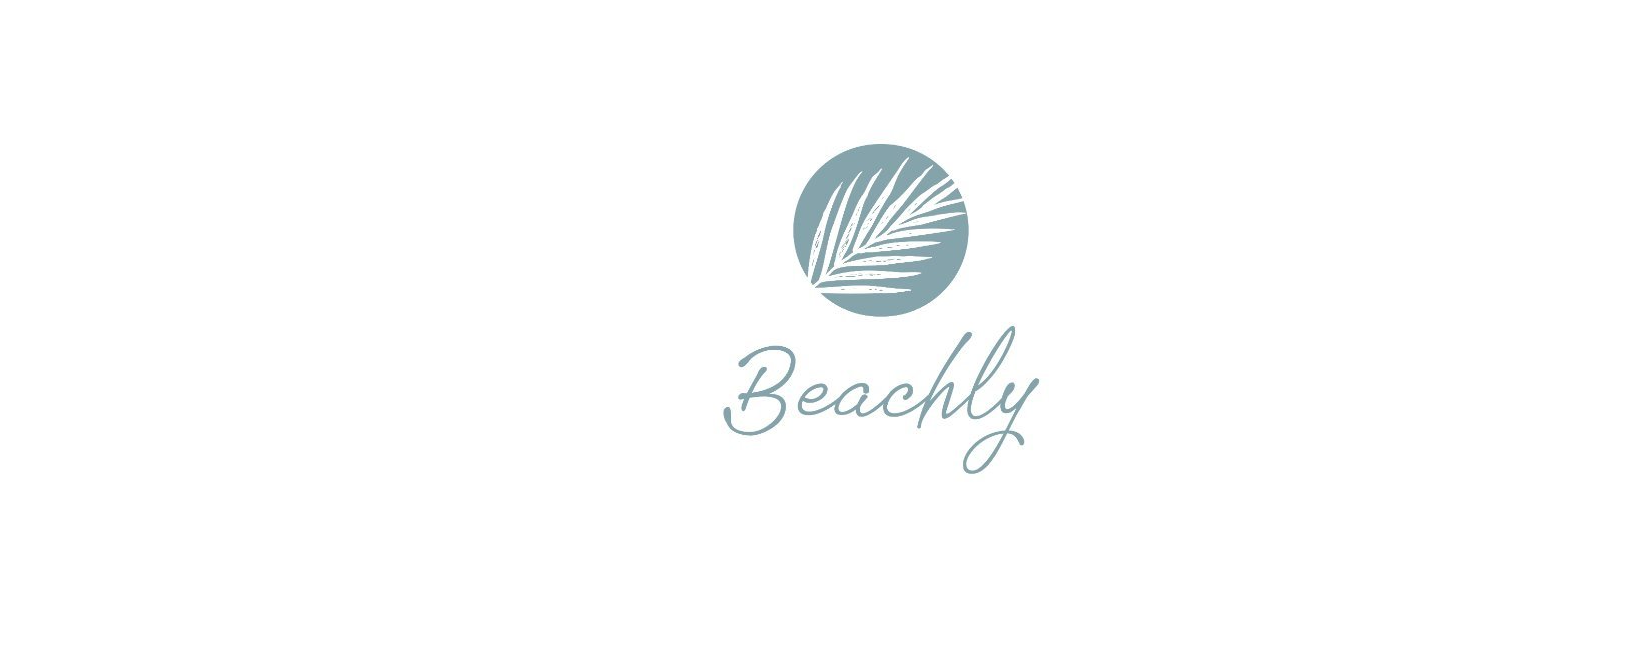 Beachly Discount Code & Review – Beach Vibes All Year Round